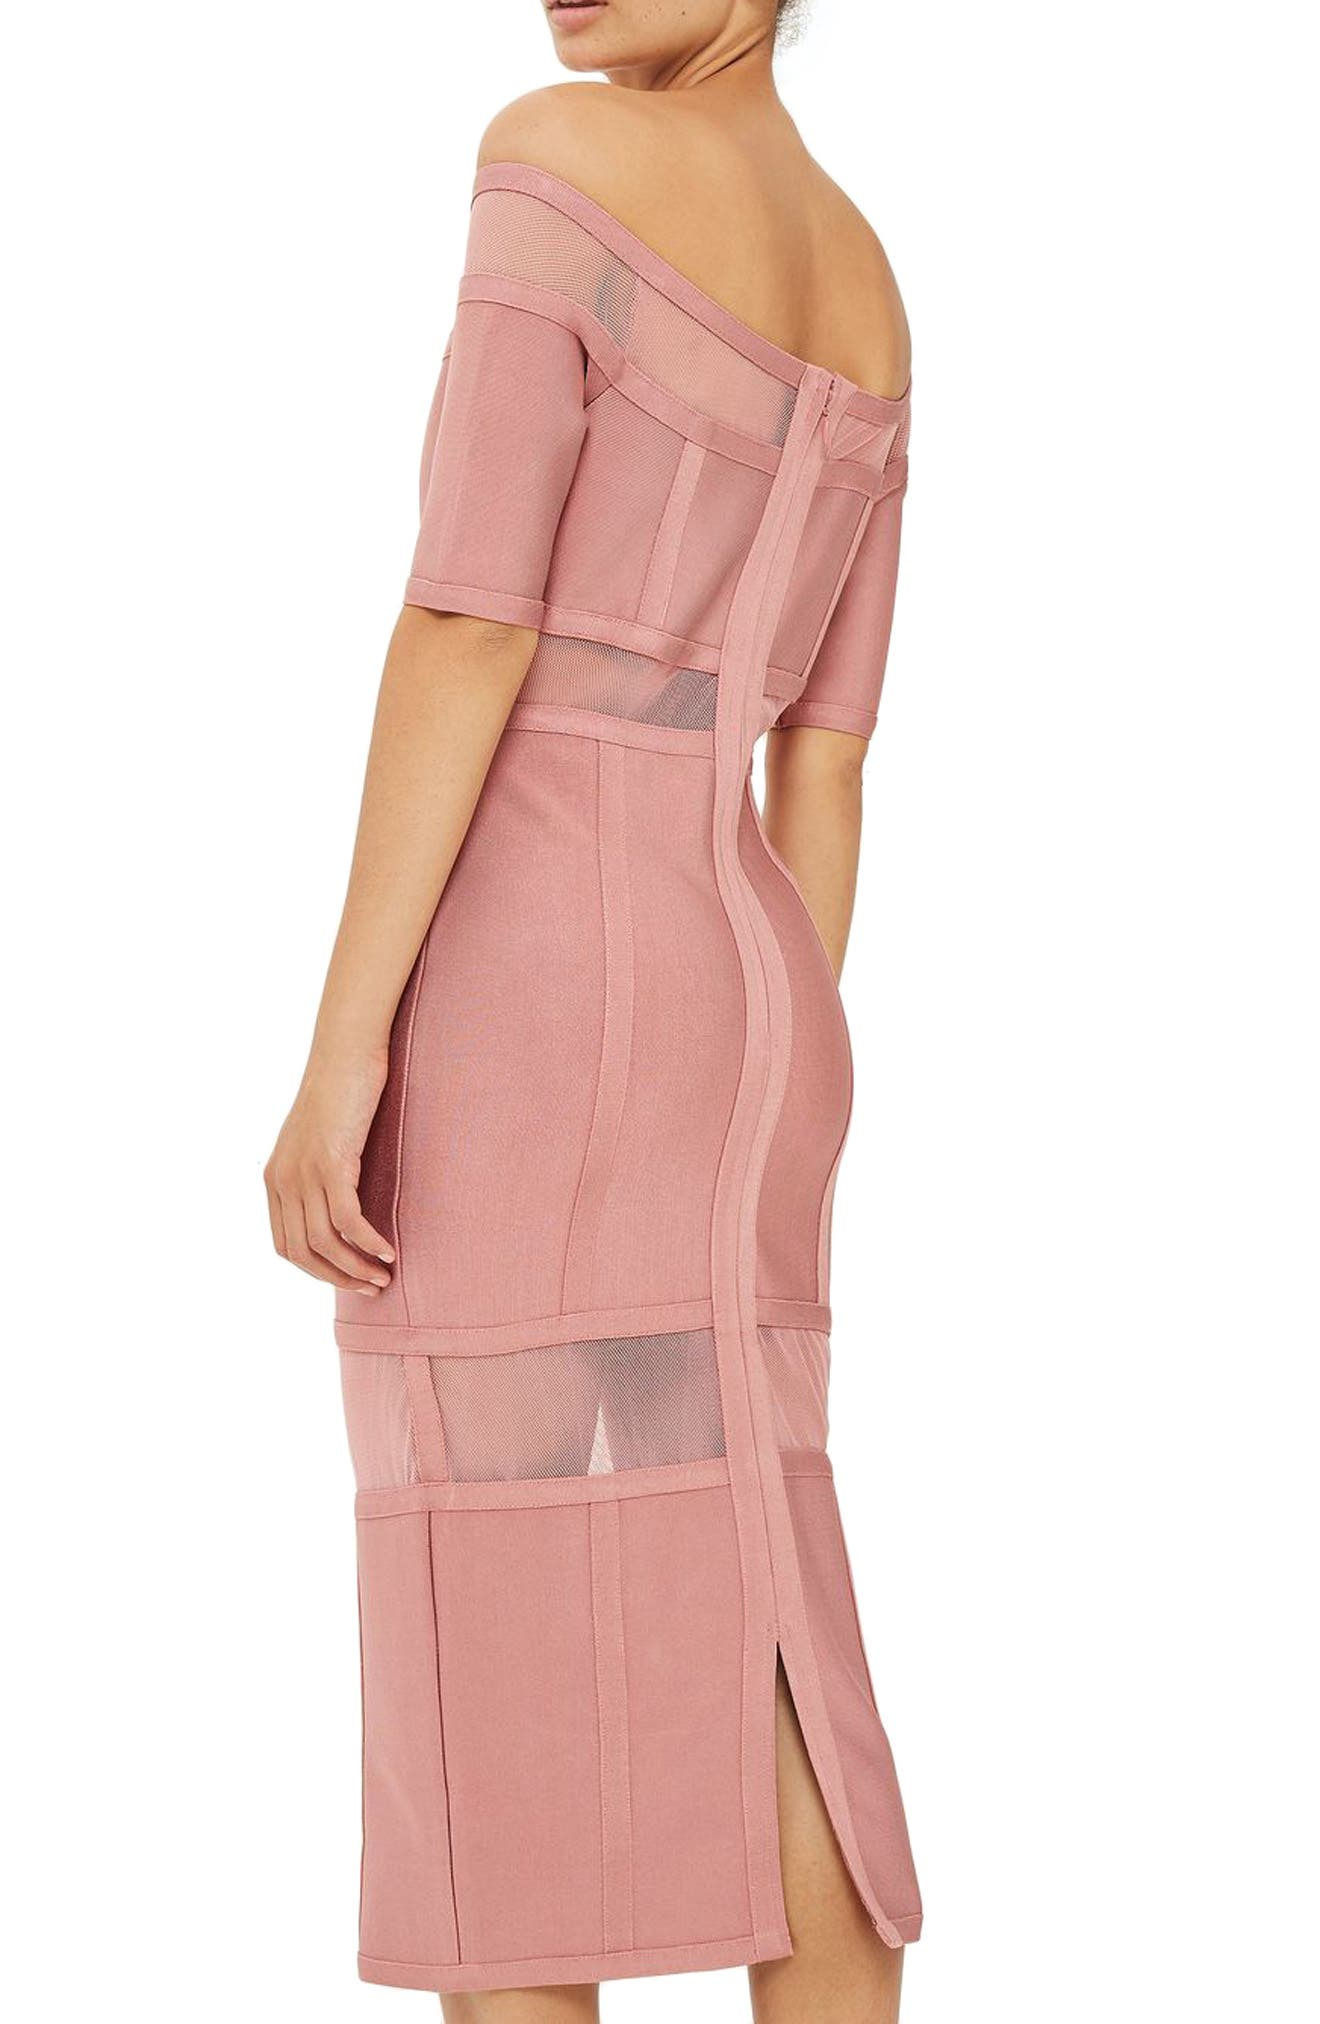 Sheer Panel Off the Shoulder Body-Con Midi Dress,                             Alternate thumbnail 2, color,                             Pink